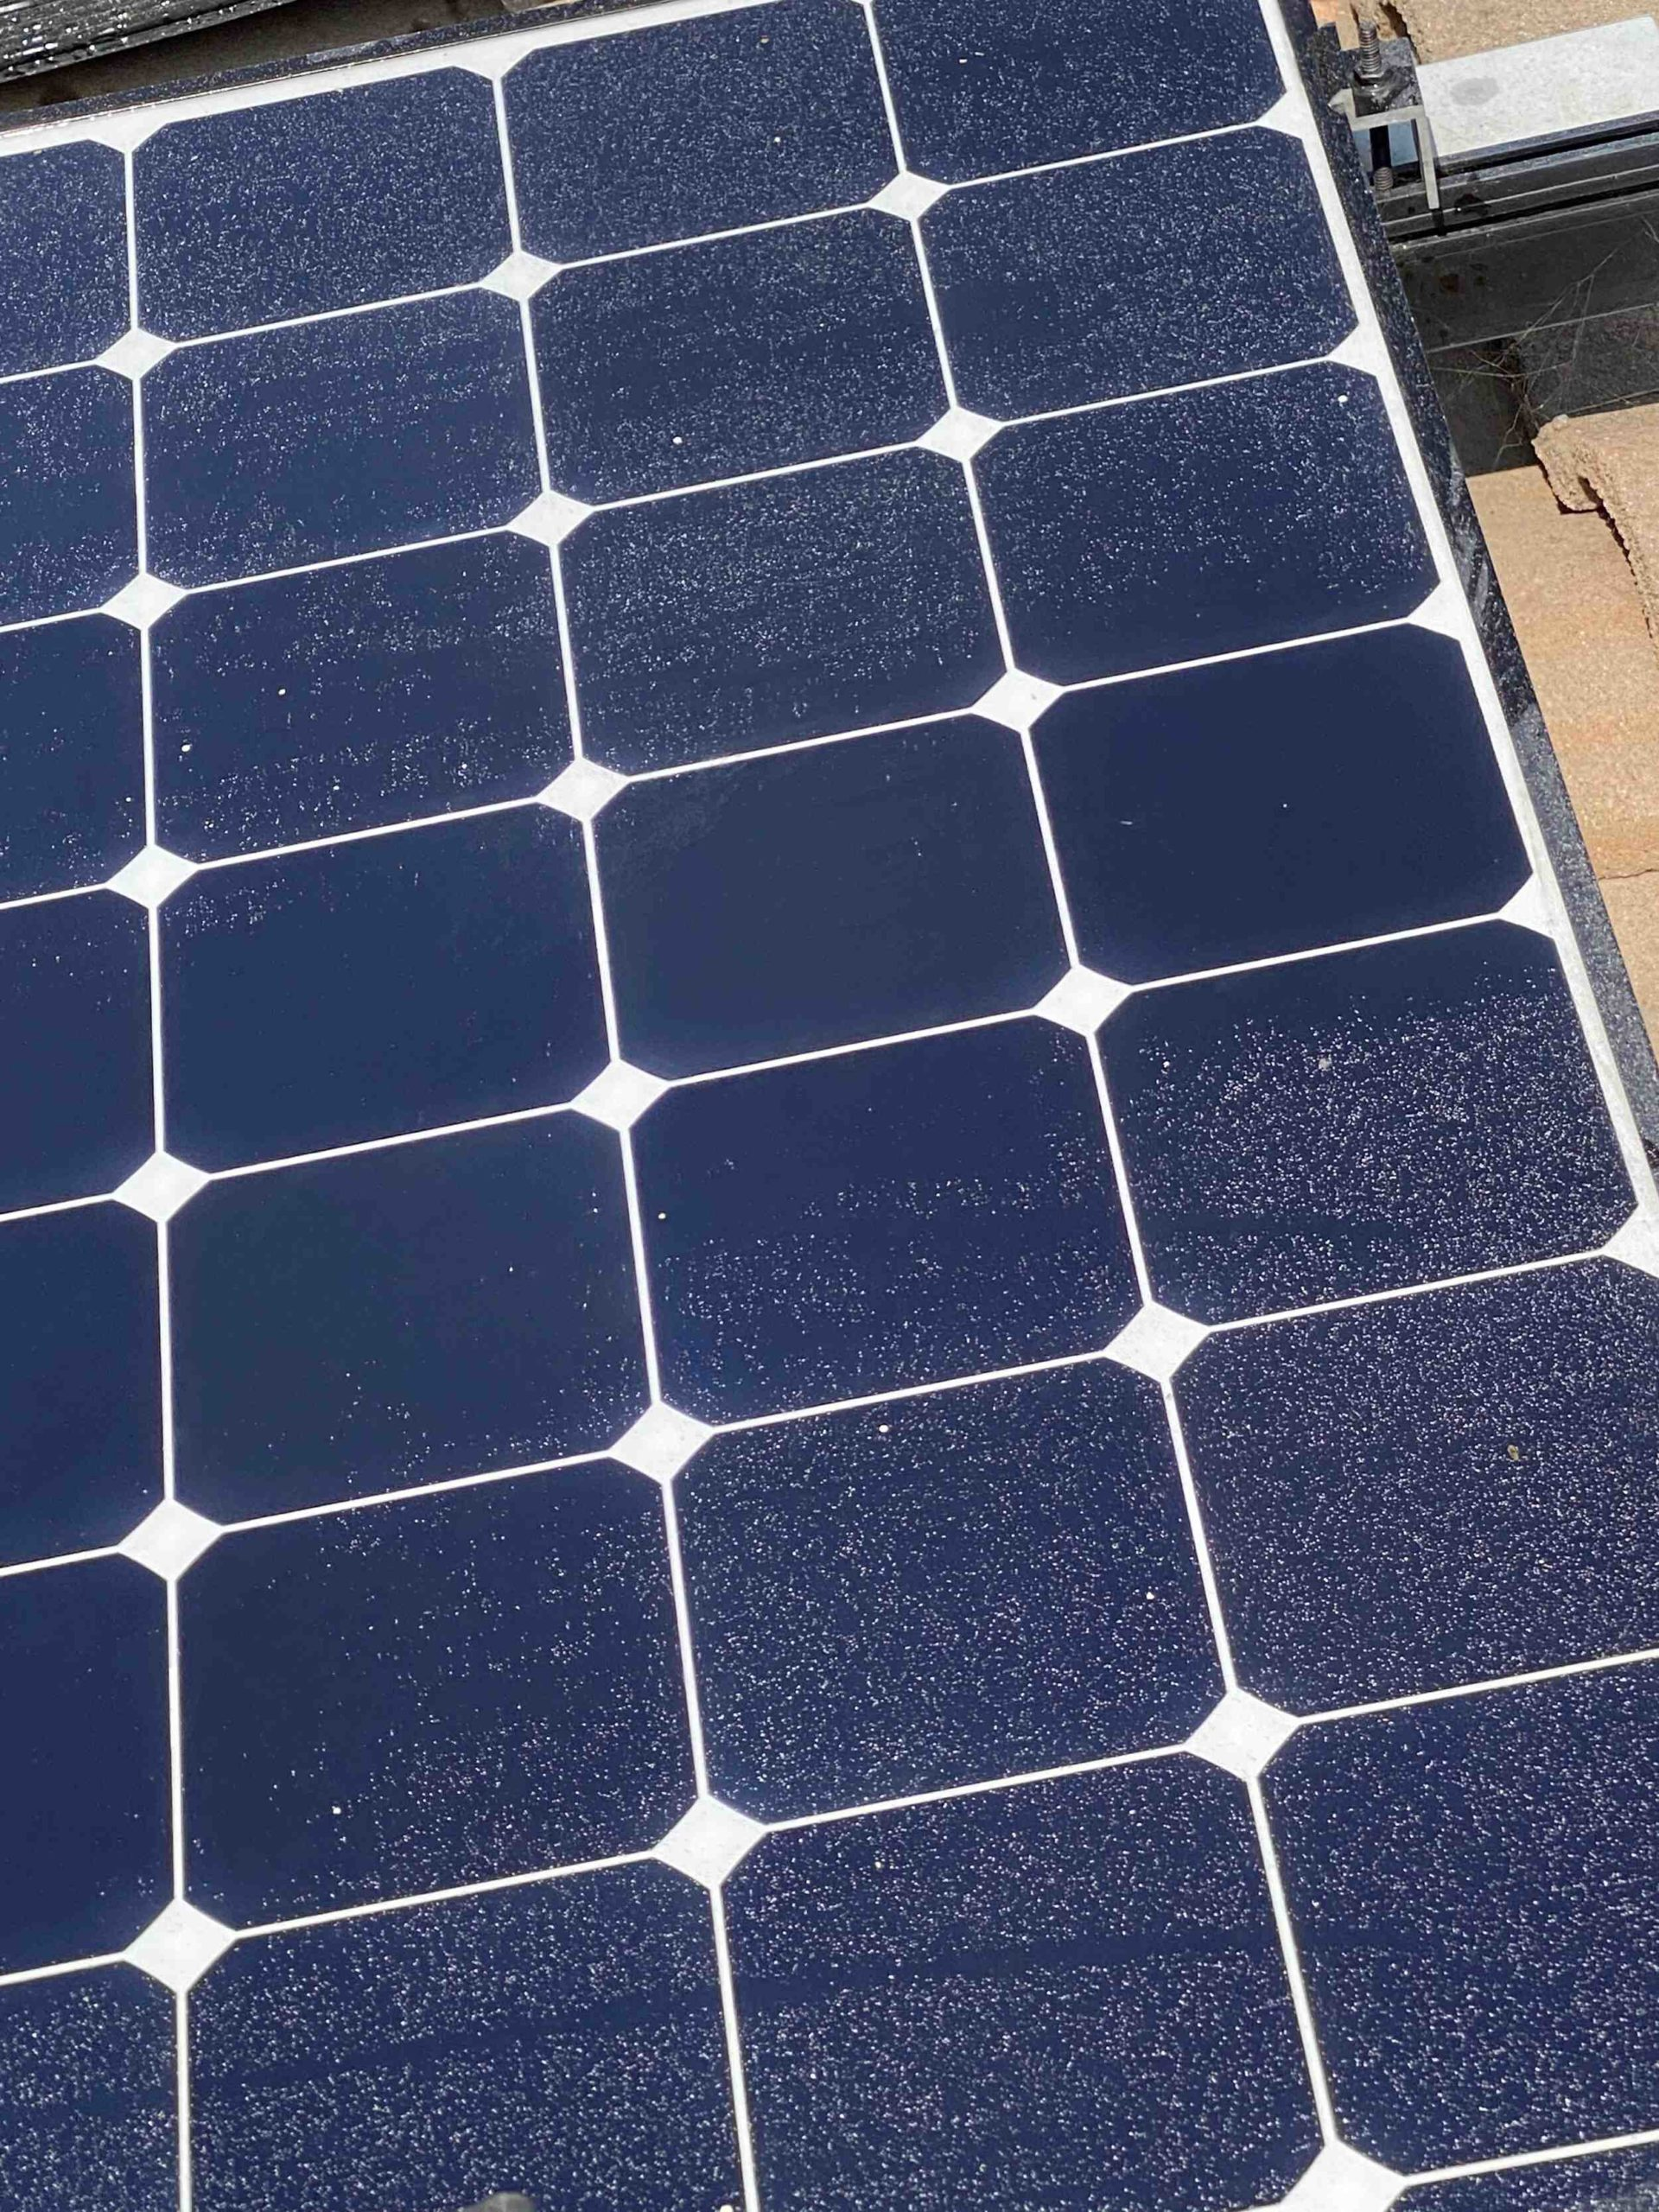 How long does it take to become a solar technician?